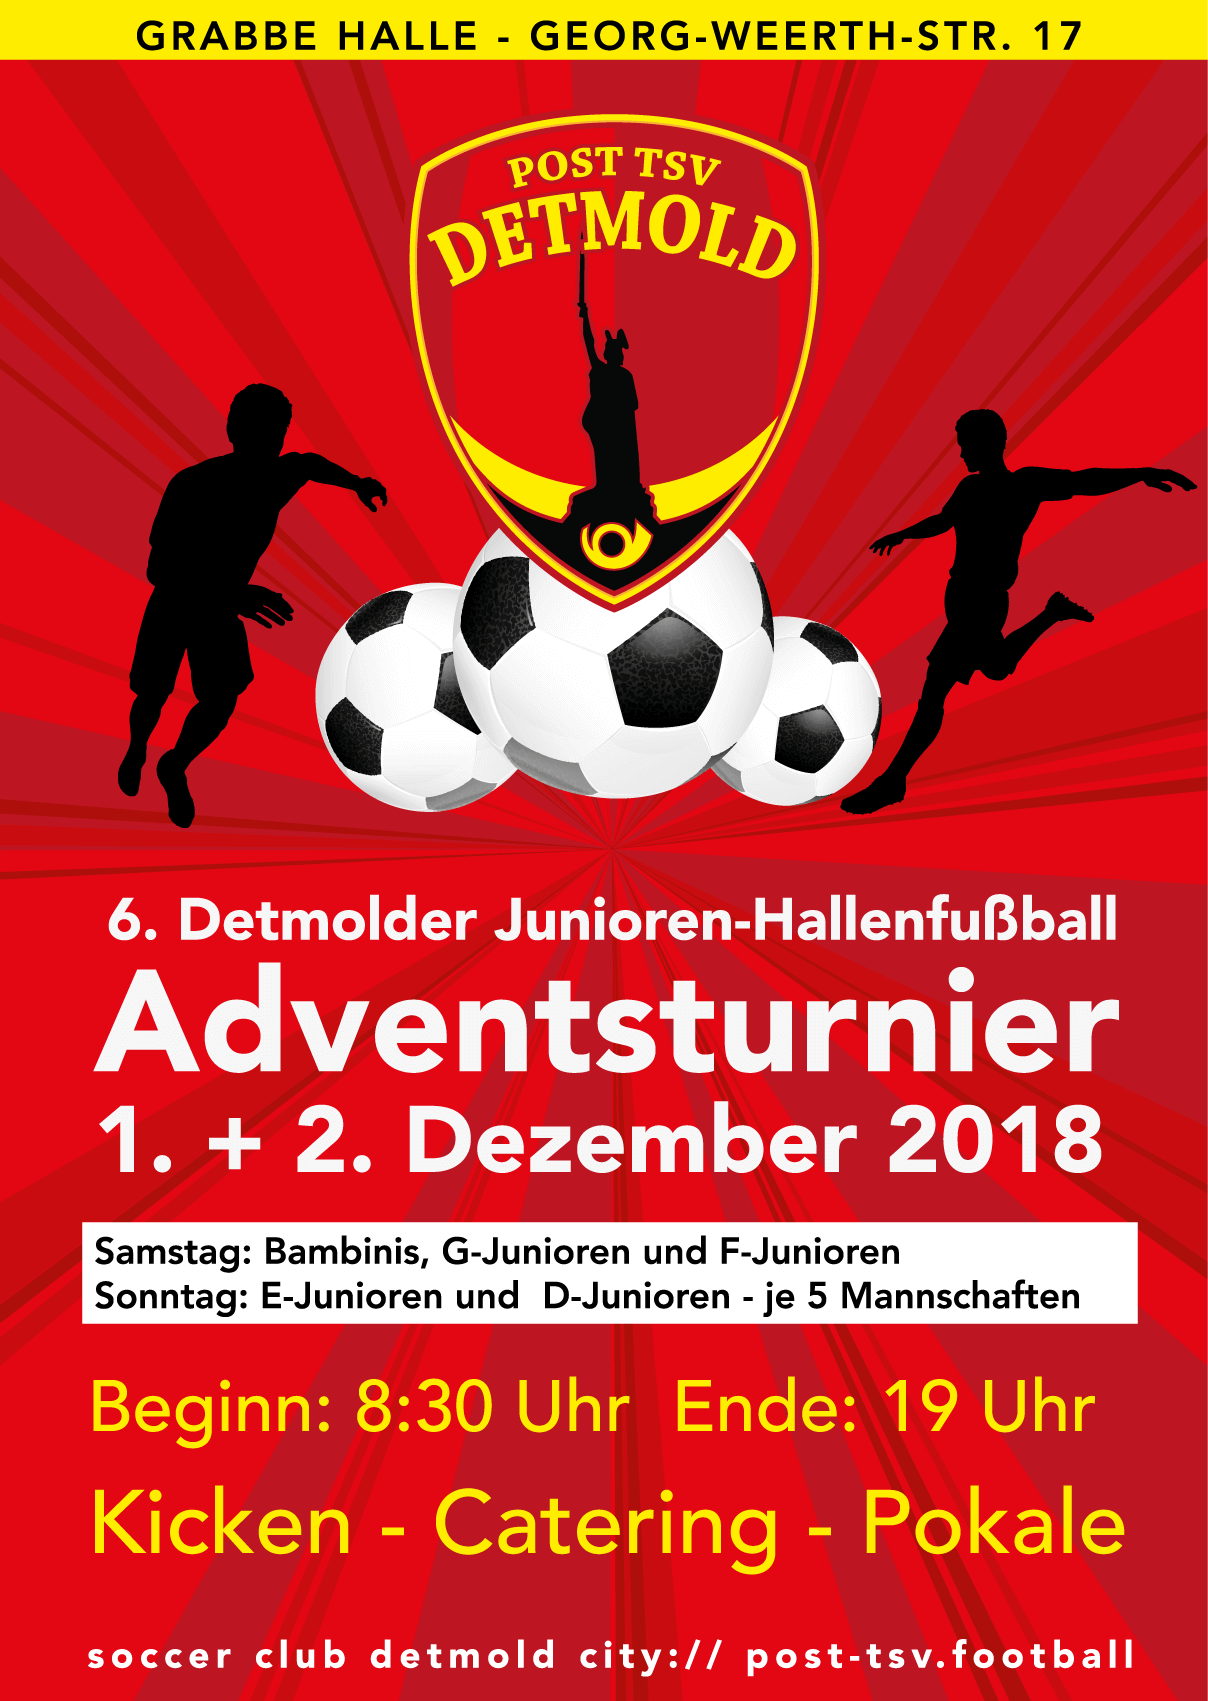 Plakat Adventsturnier 2018 - Post TSV Detmold